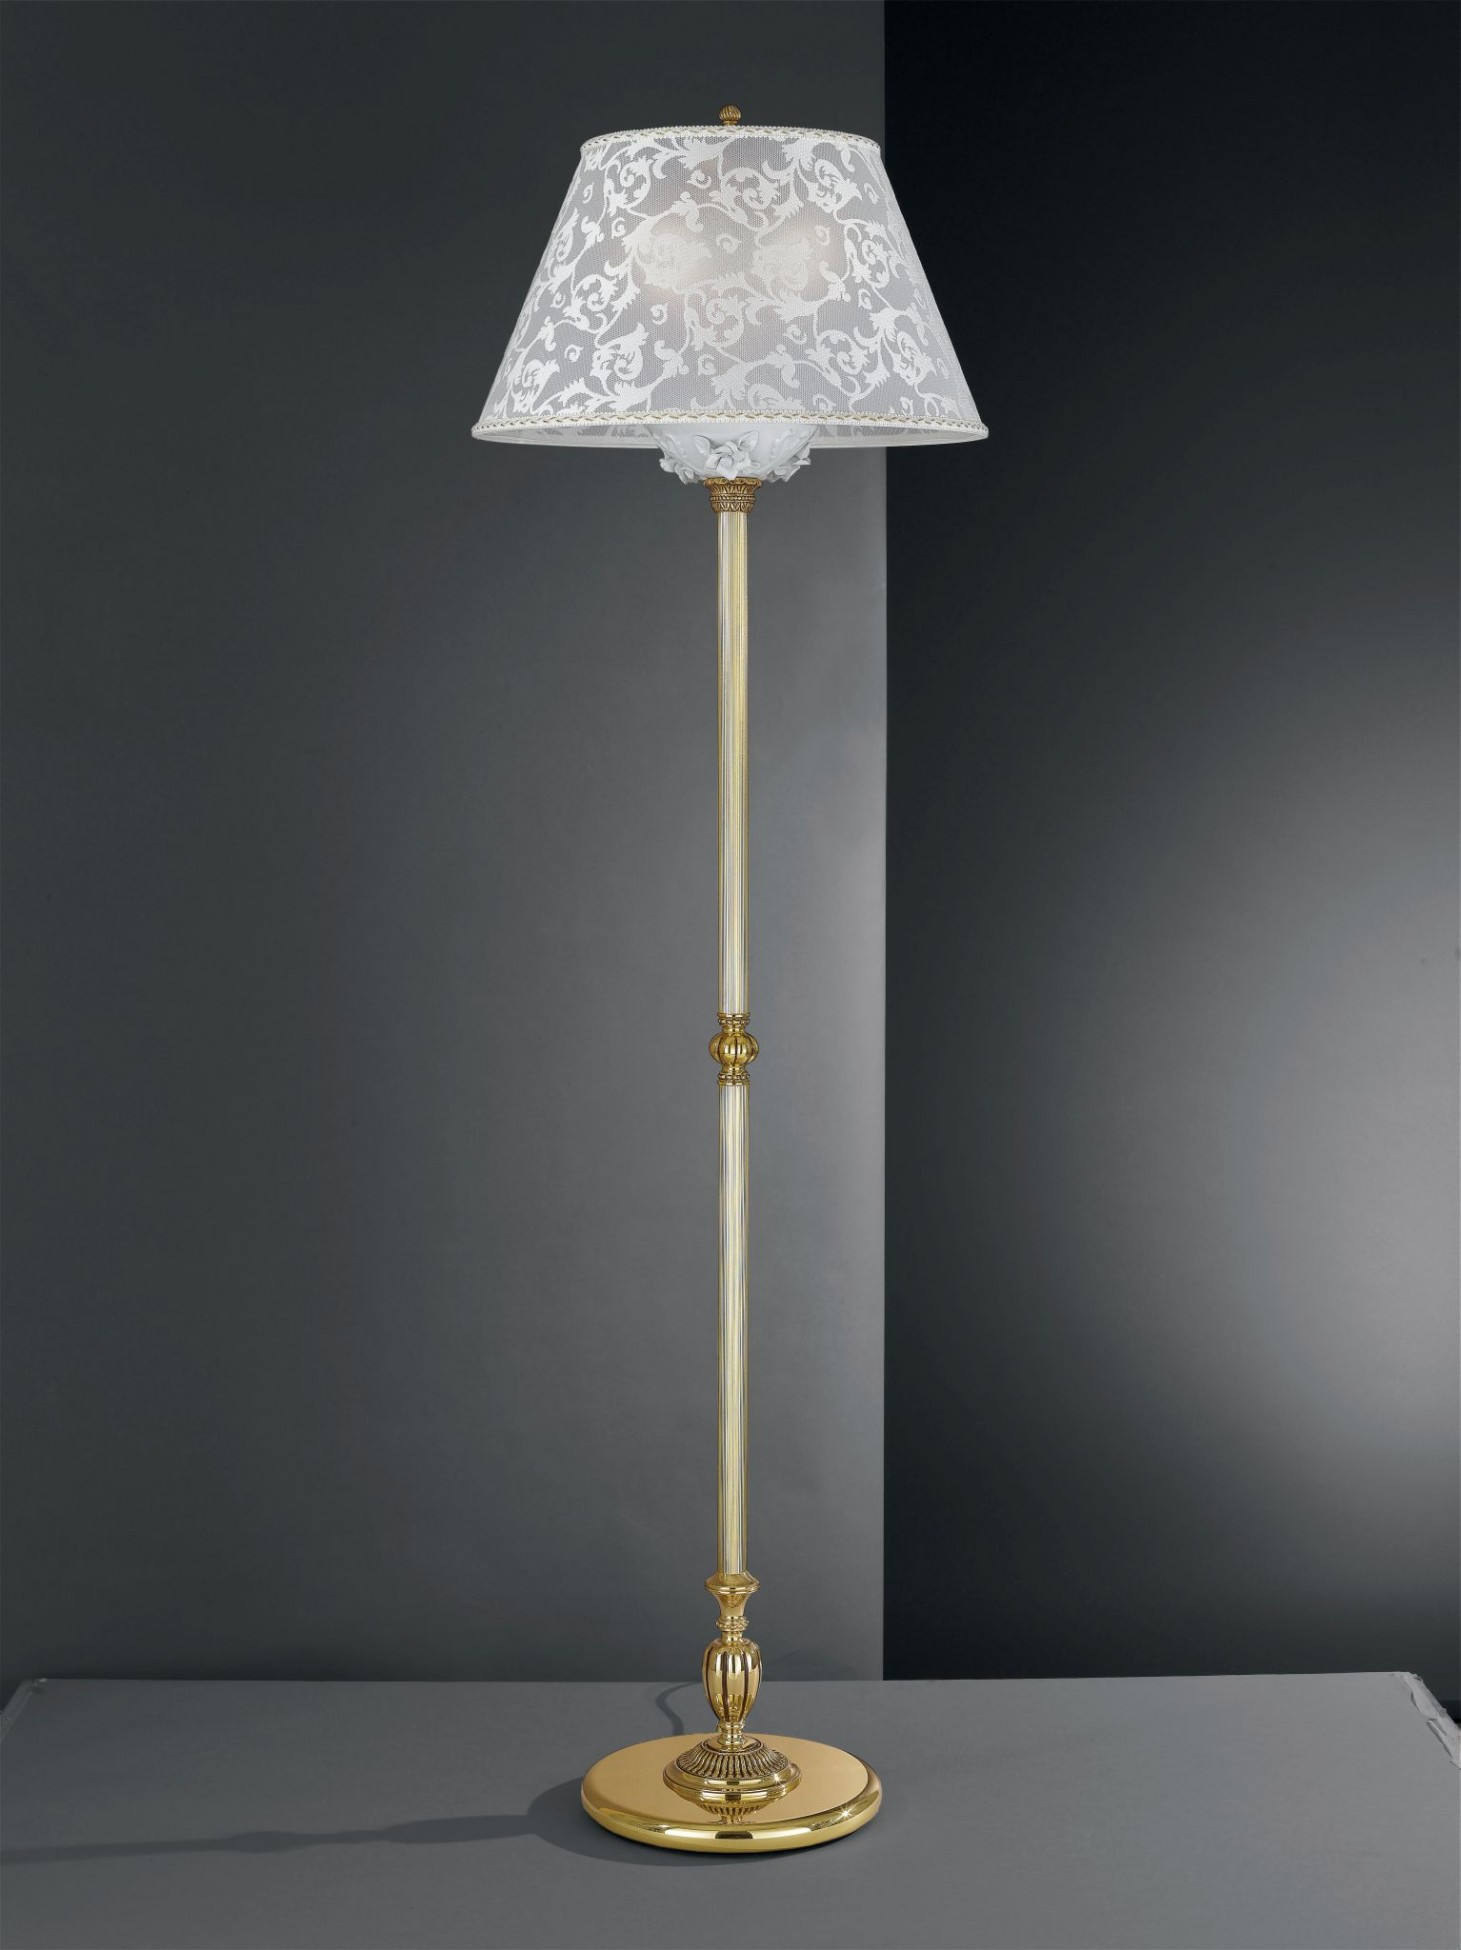 oil rubbed floor than shade bronze and rustoleum makeover lamp pin new less lampshade